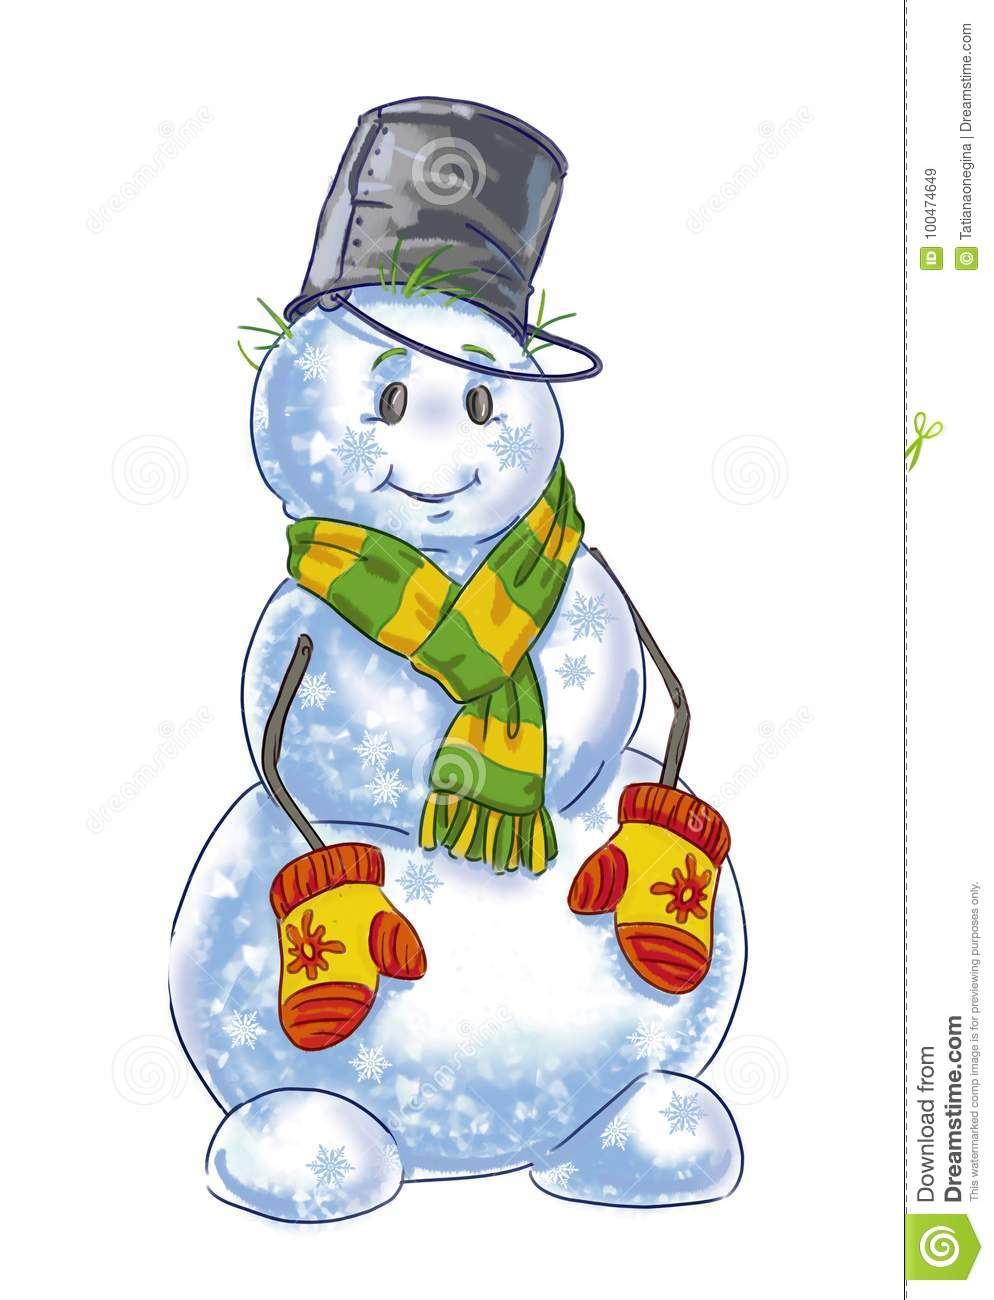 Drawing Of A Happy Snowman Stock Illustration Illustration Of Scarf